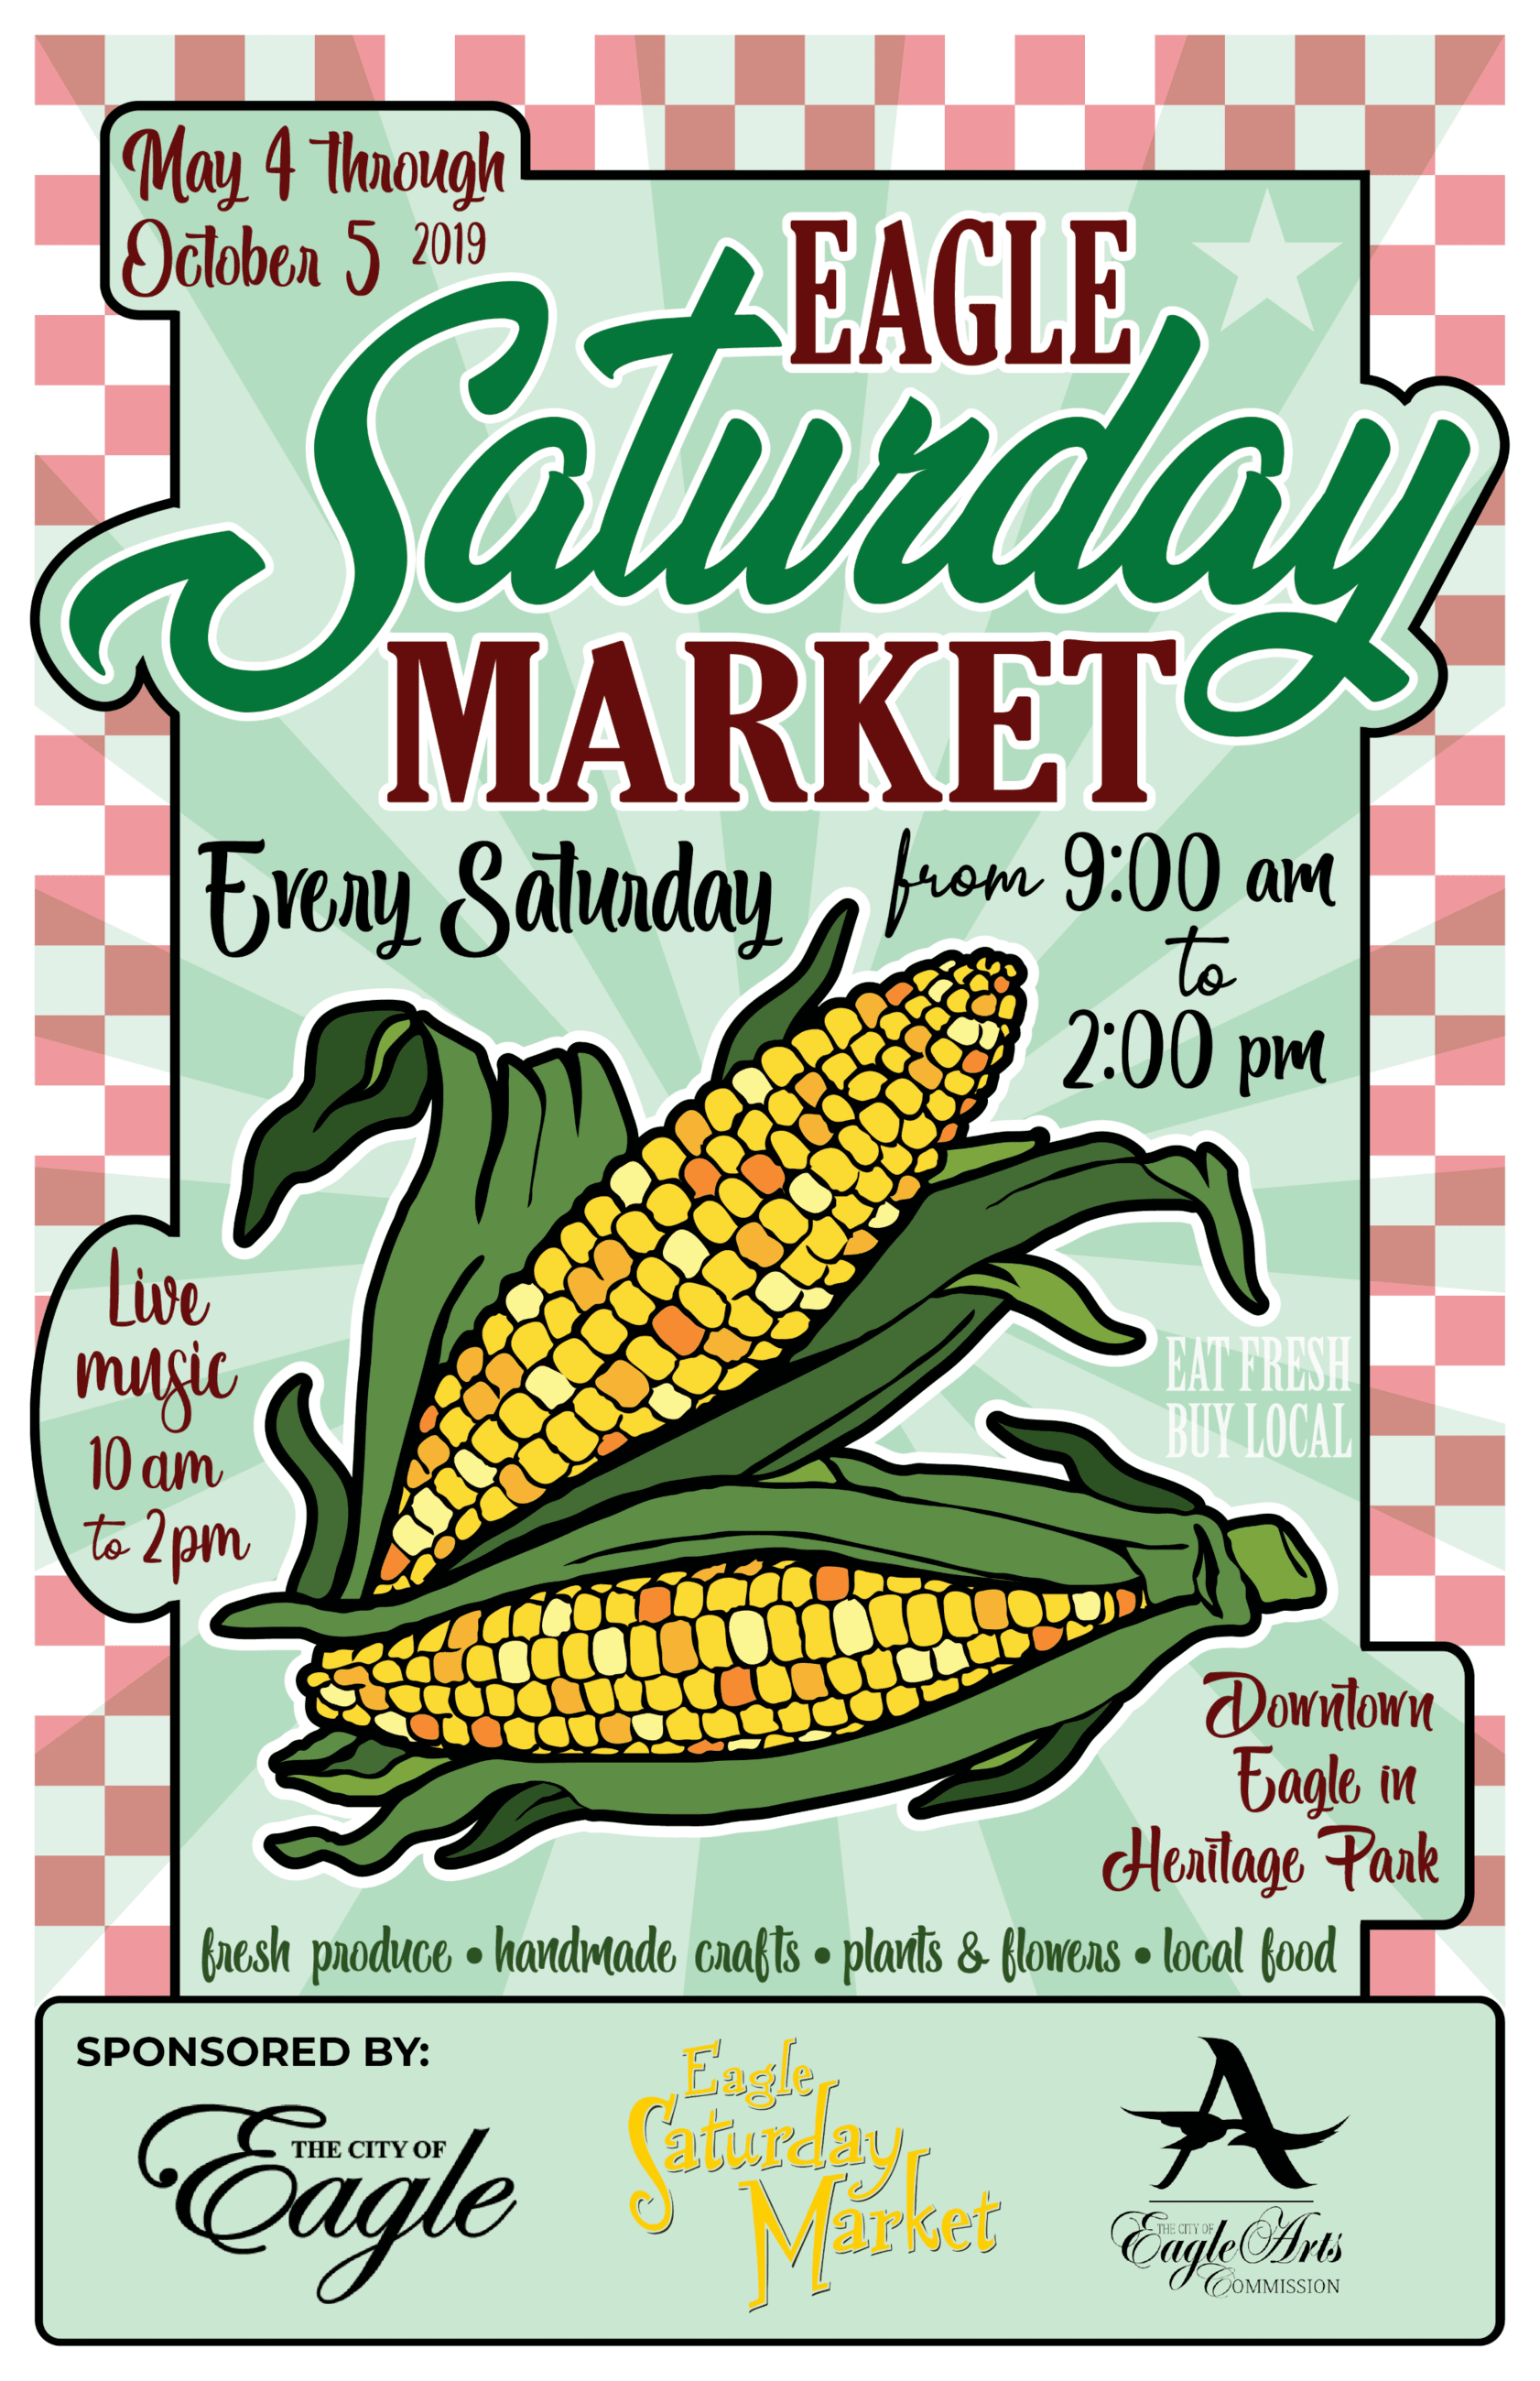 2019 Eagle Saturday Market Poster Winner